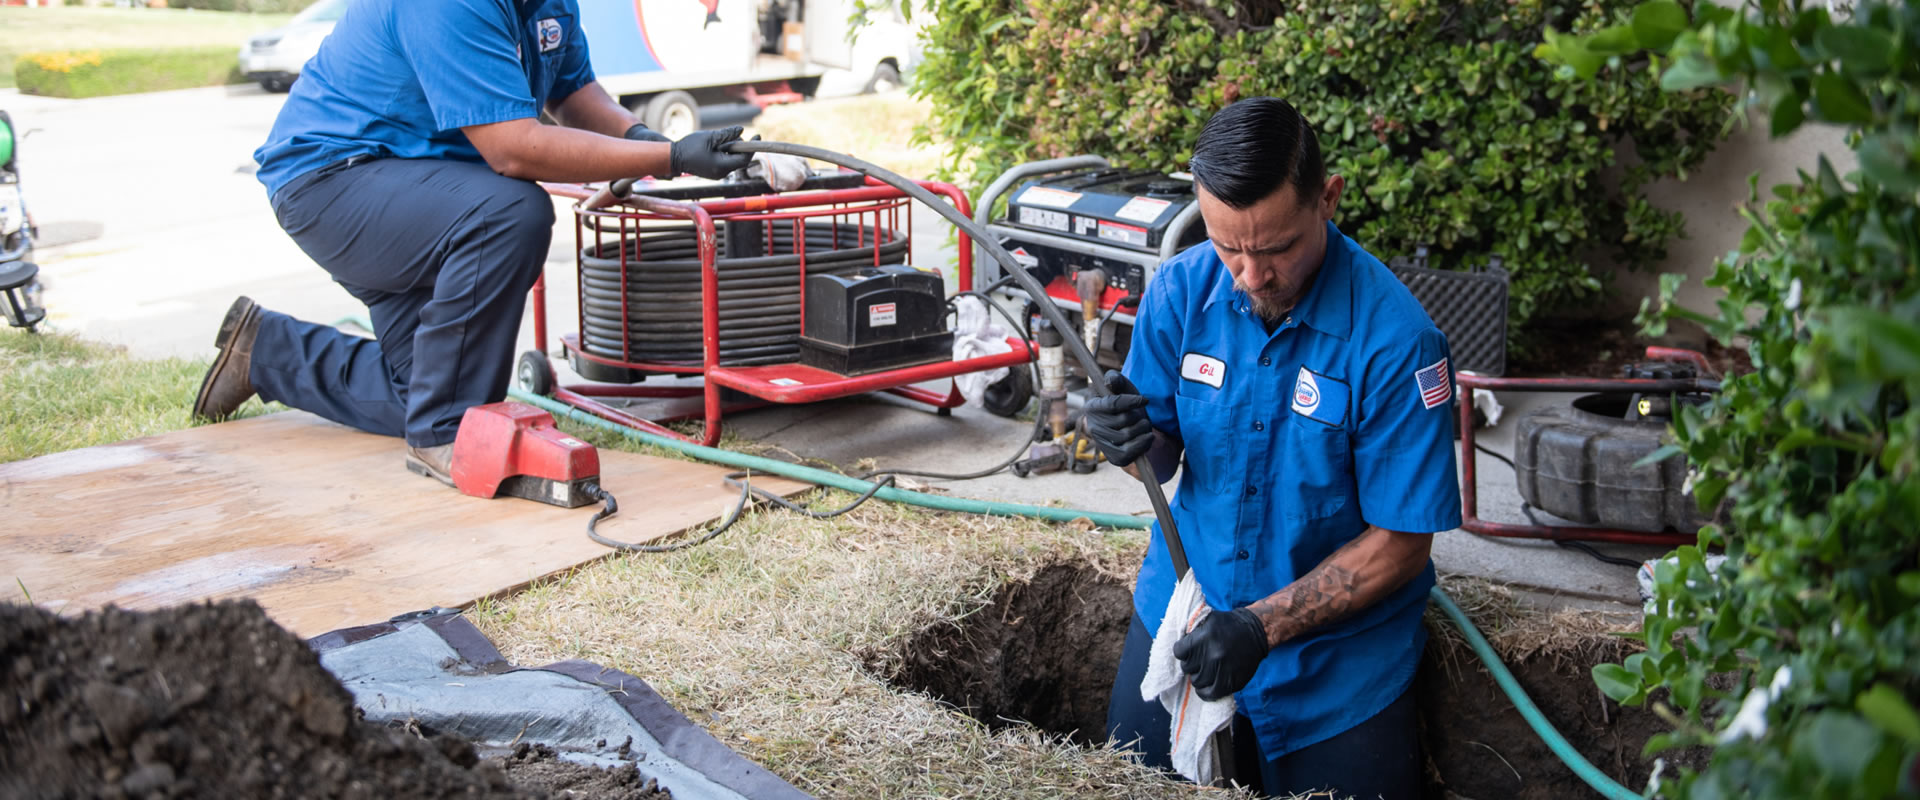 Drain Cleaning in Franciscan Village